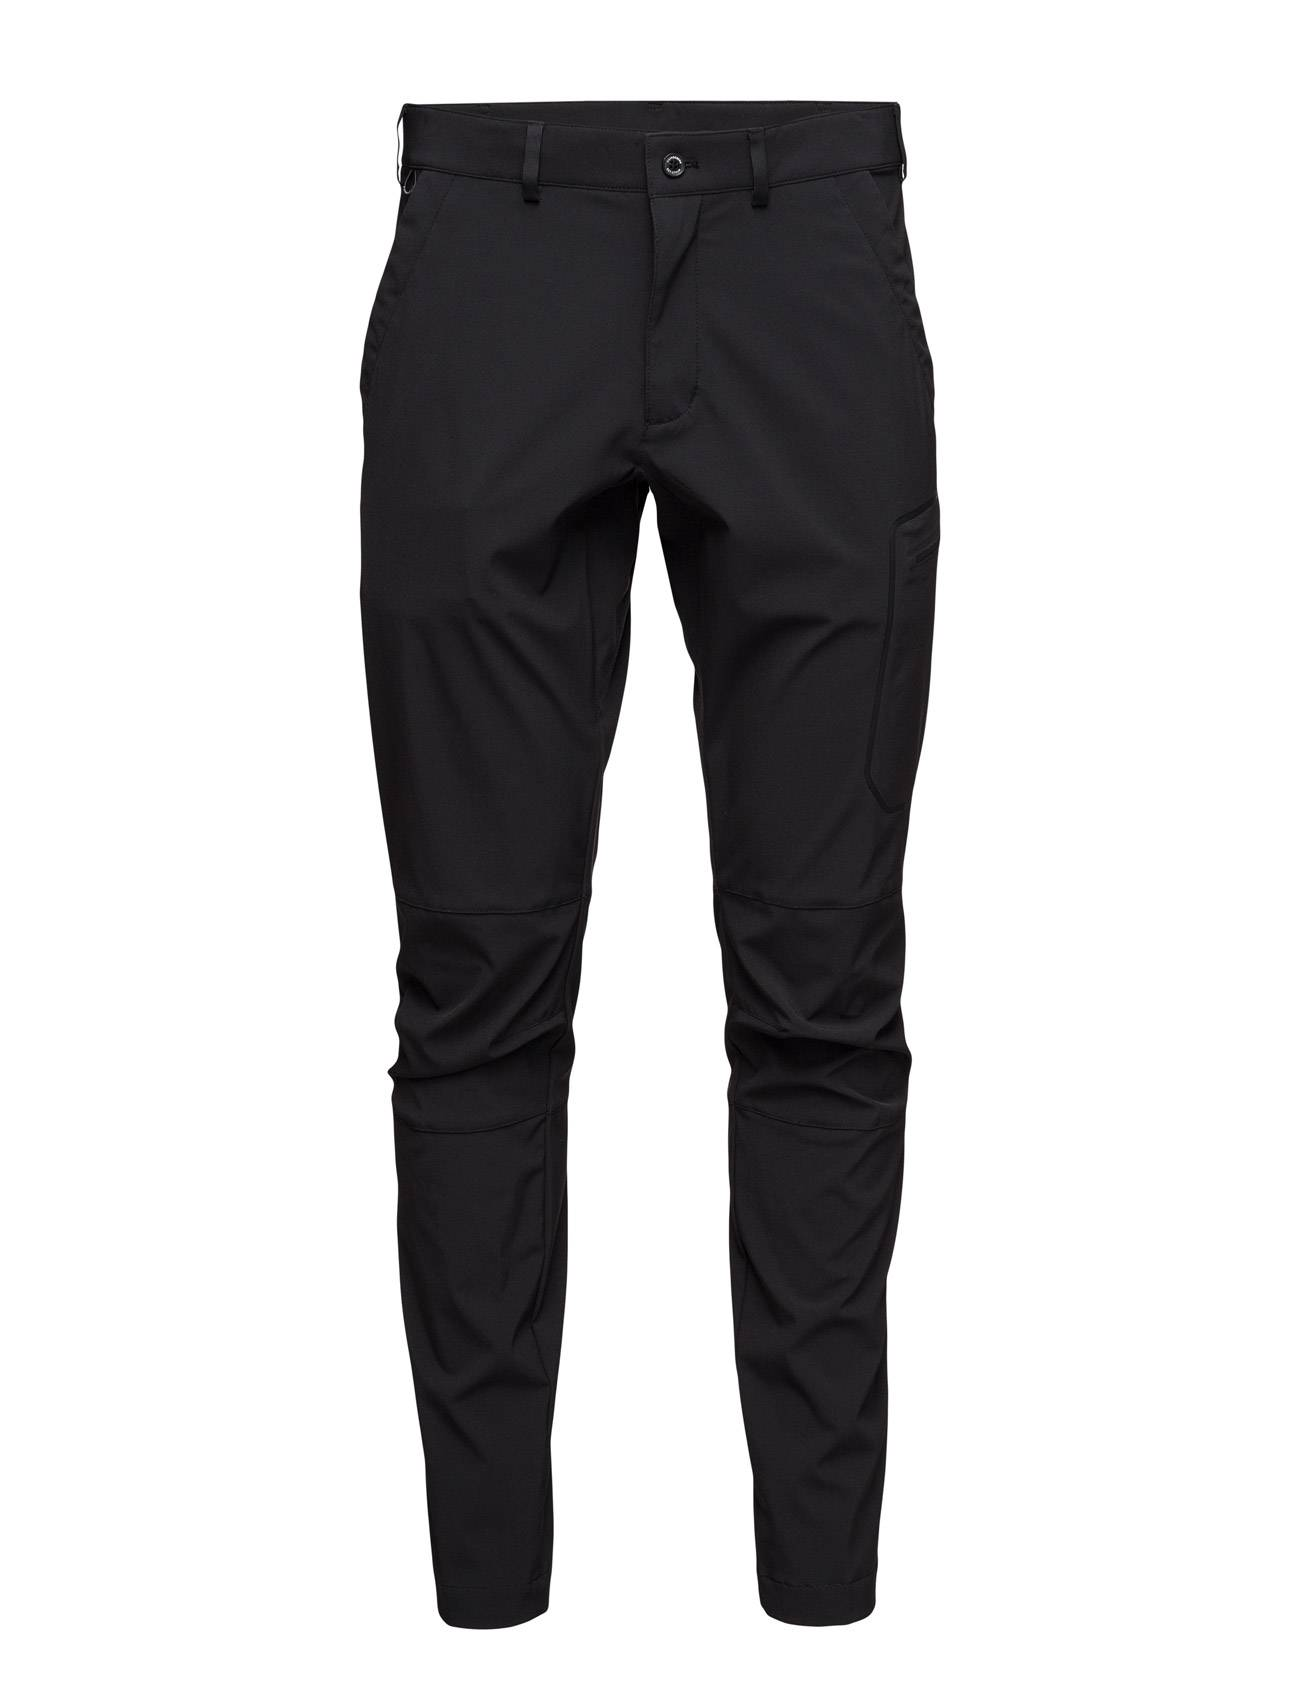 J. Lindeberg M Hiking Pants Jl Softshell